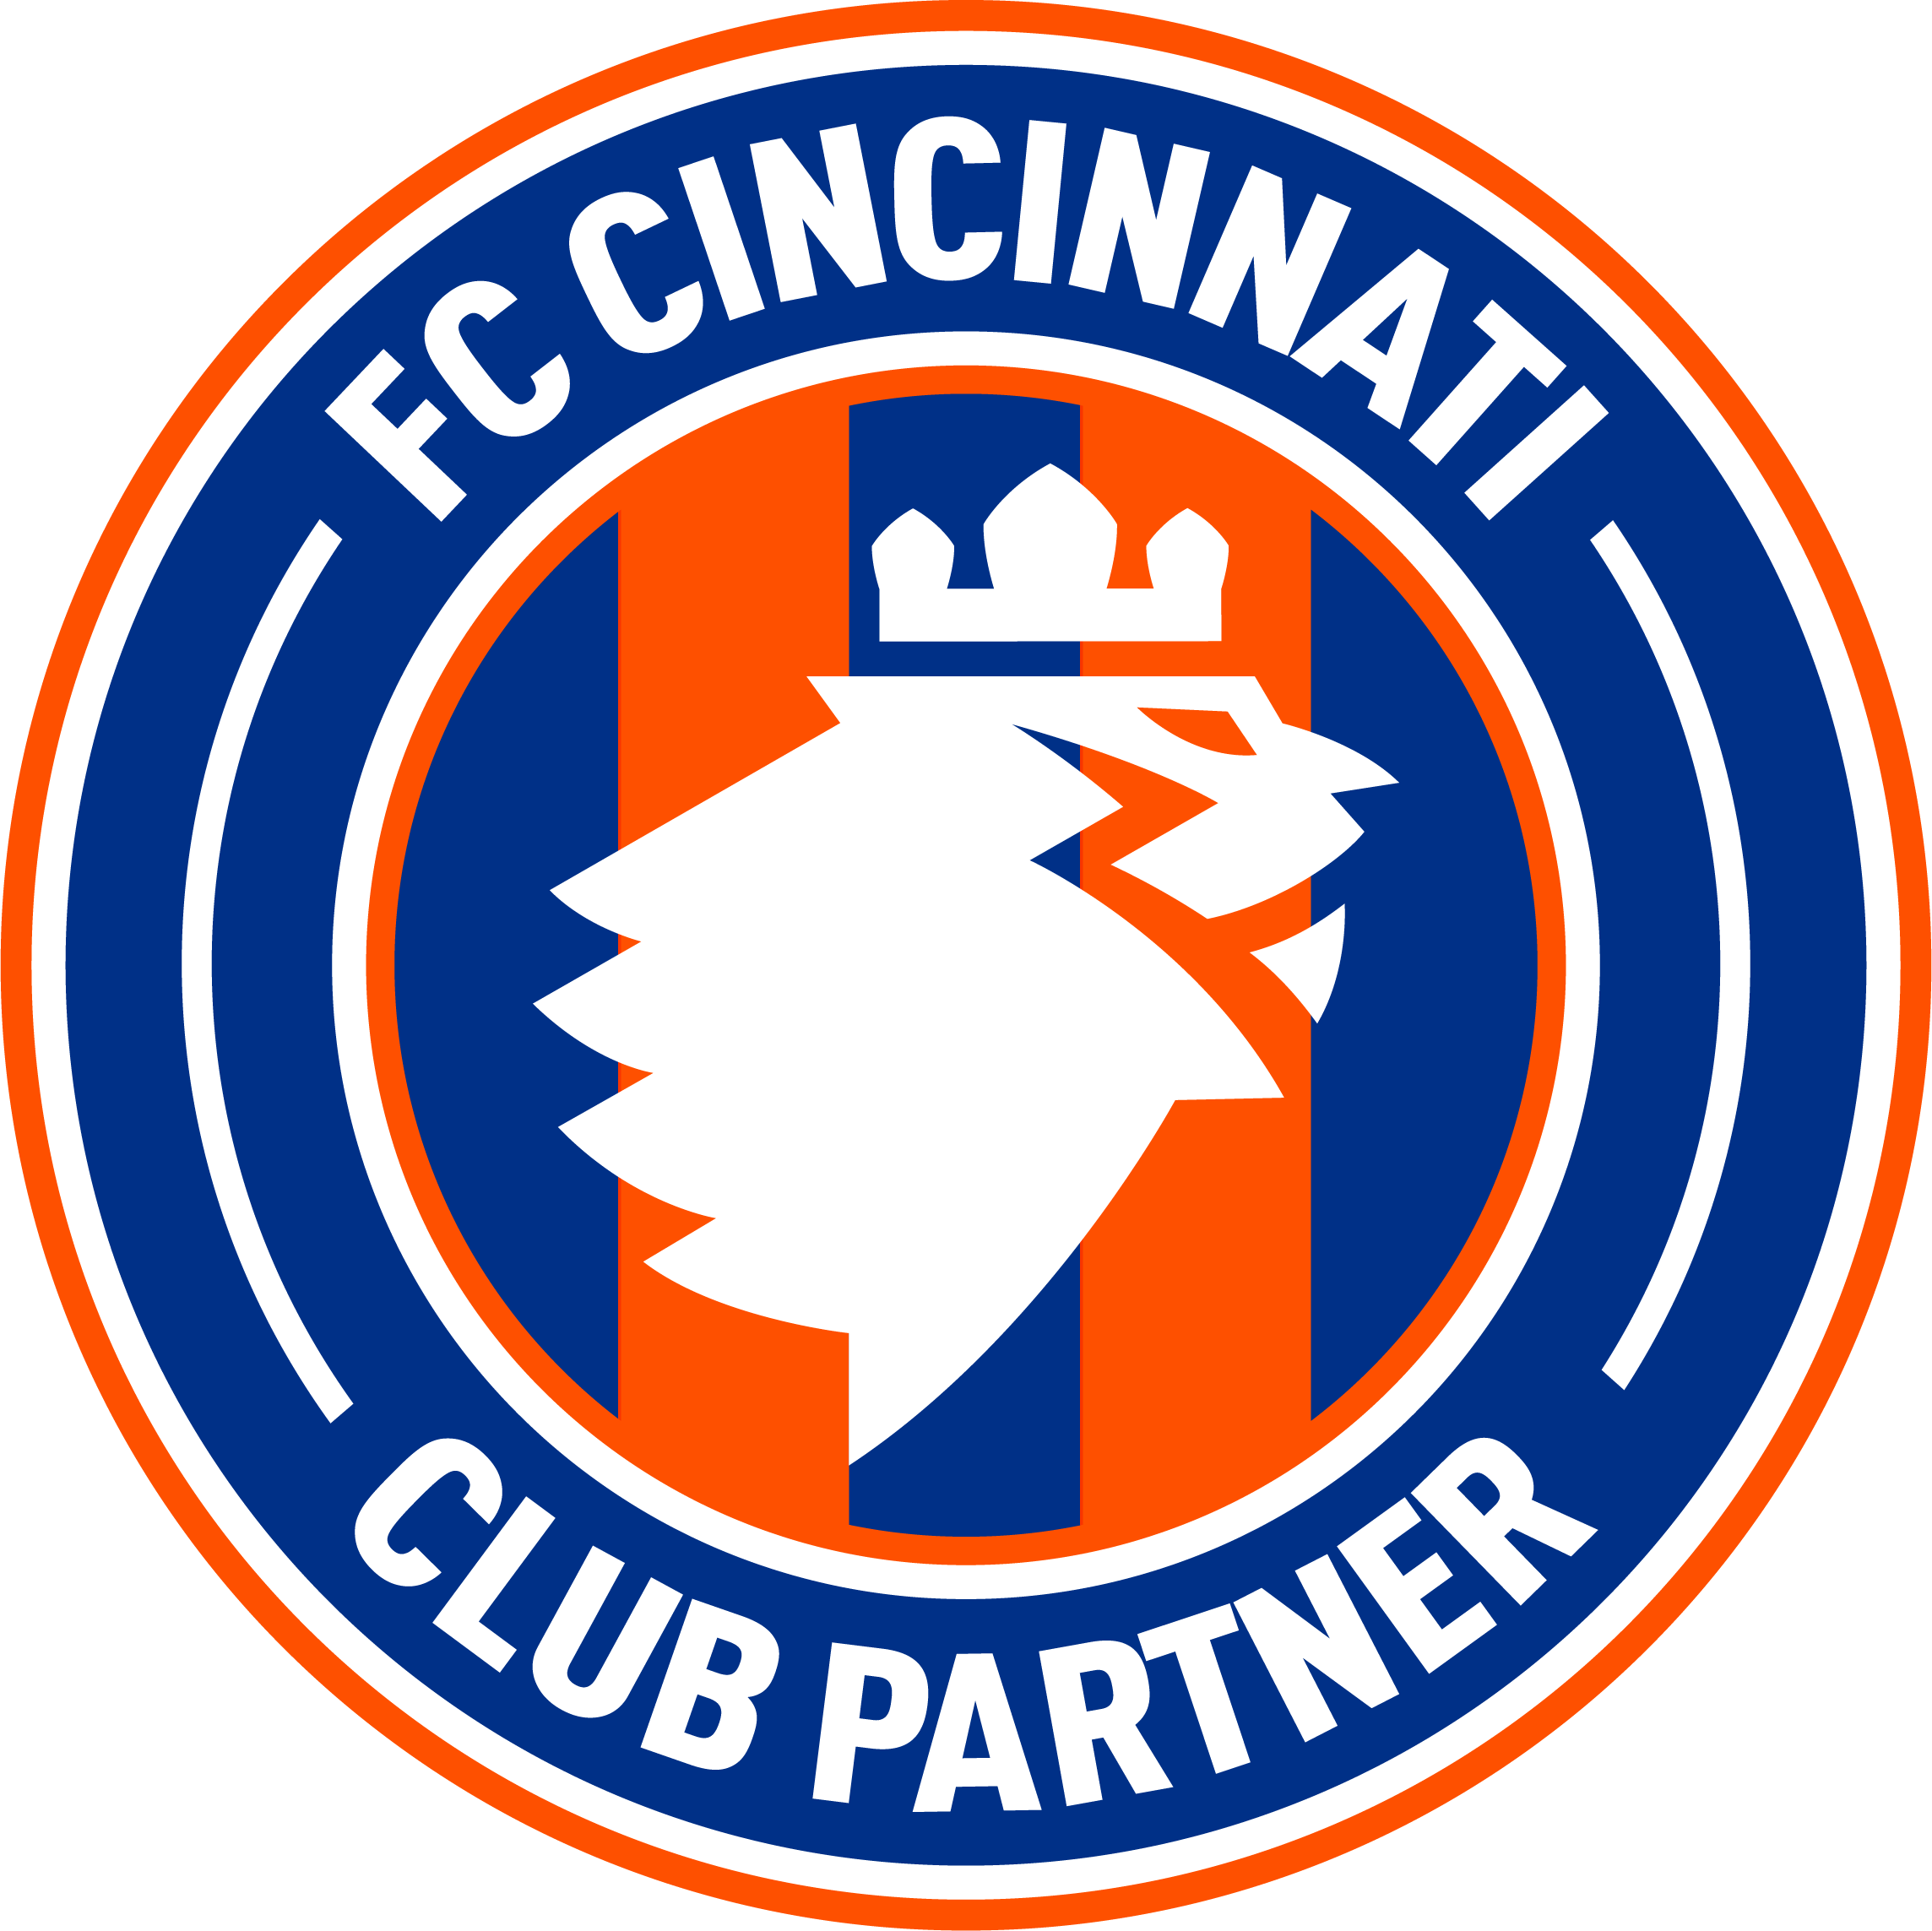 FCC Club Partner